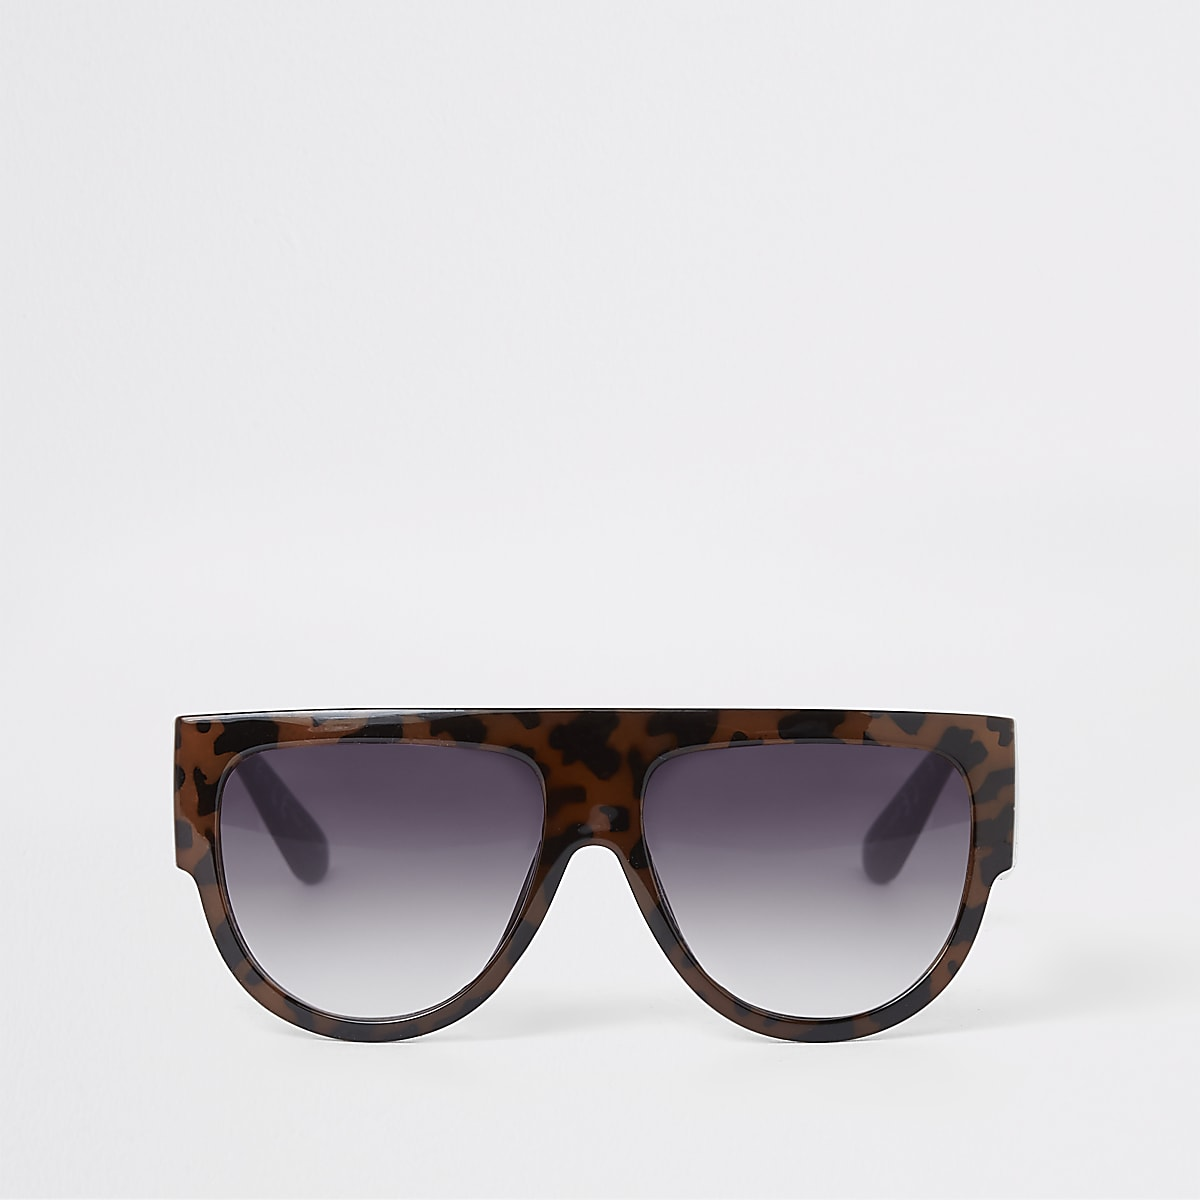 Brown tortoiseshell print visor sunglasses